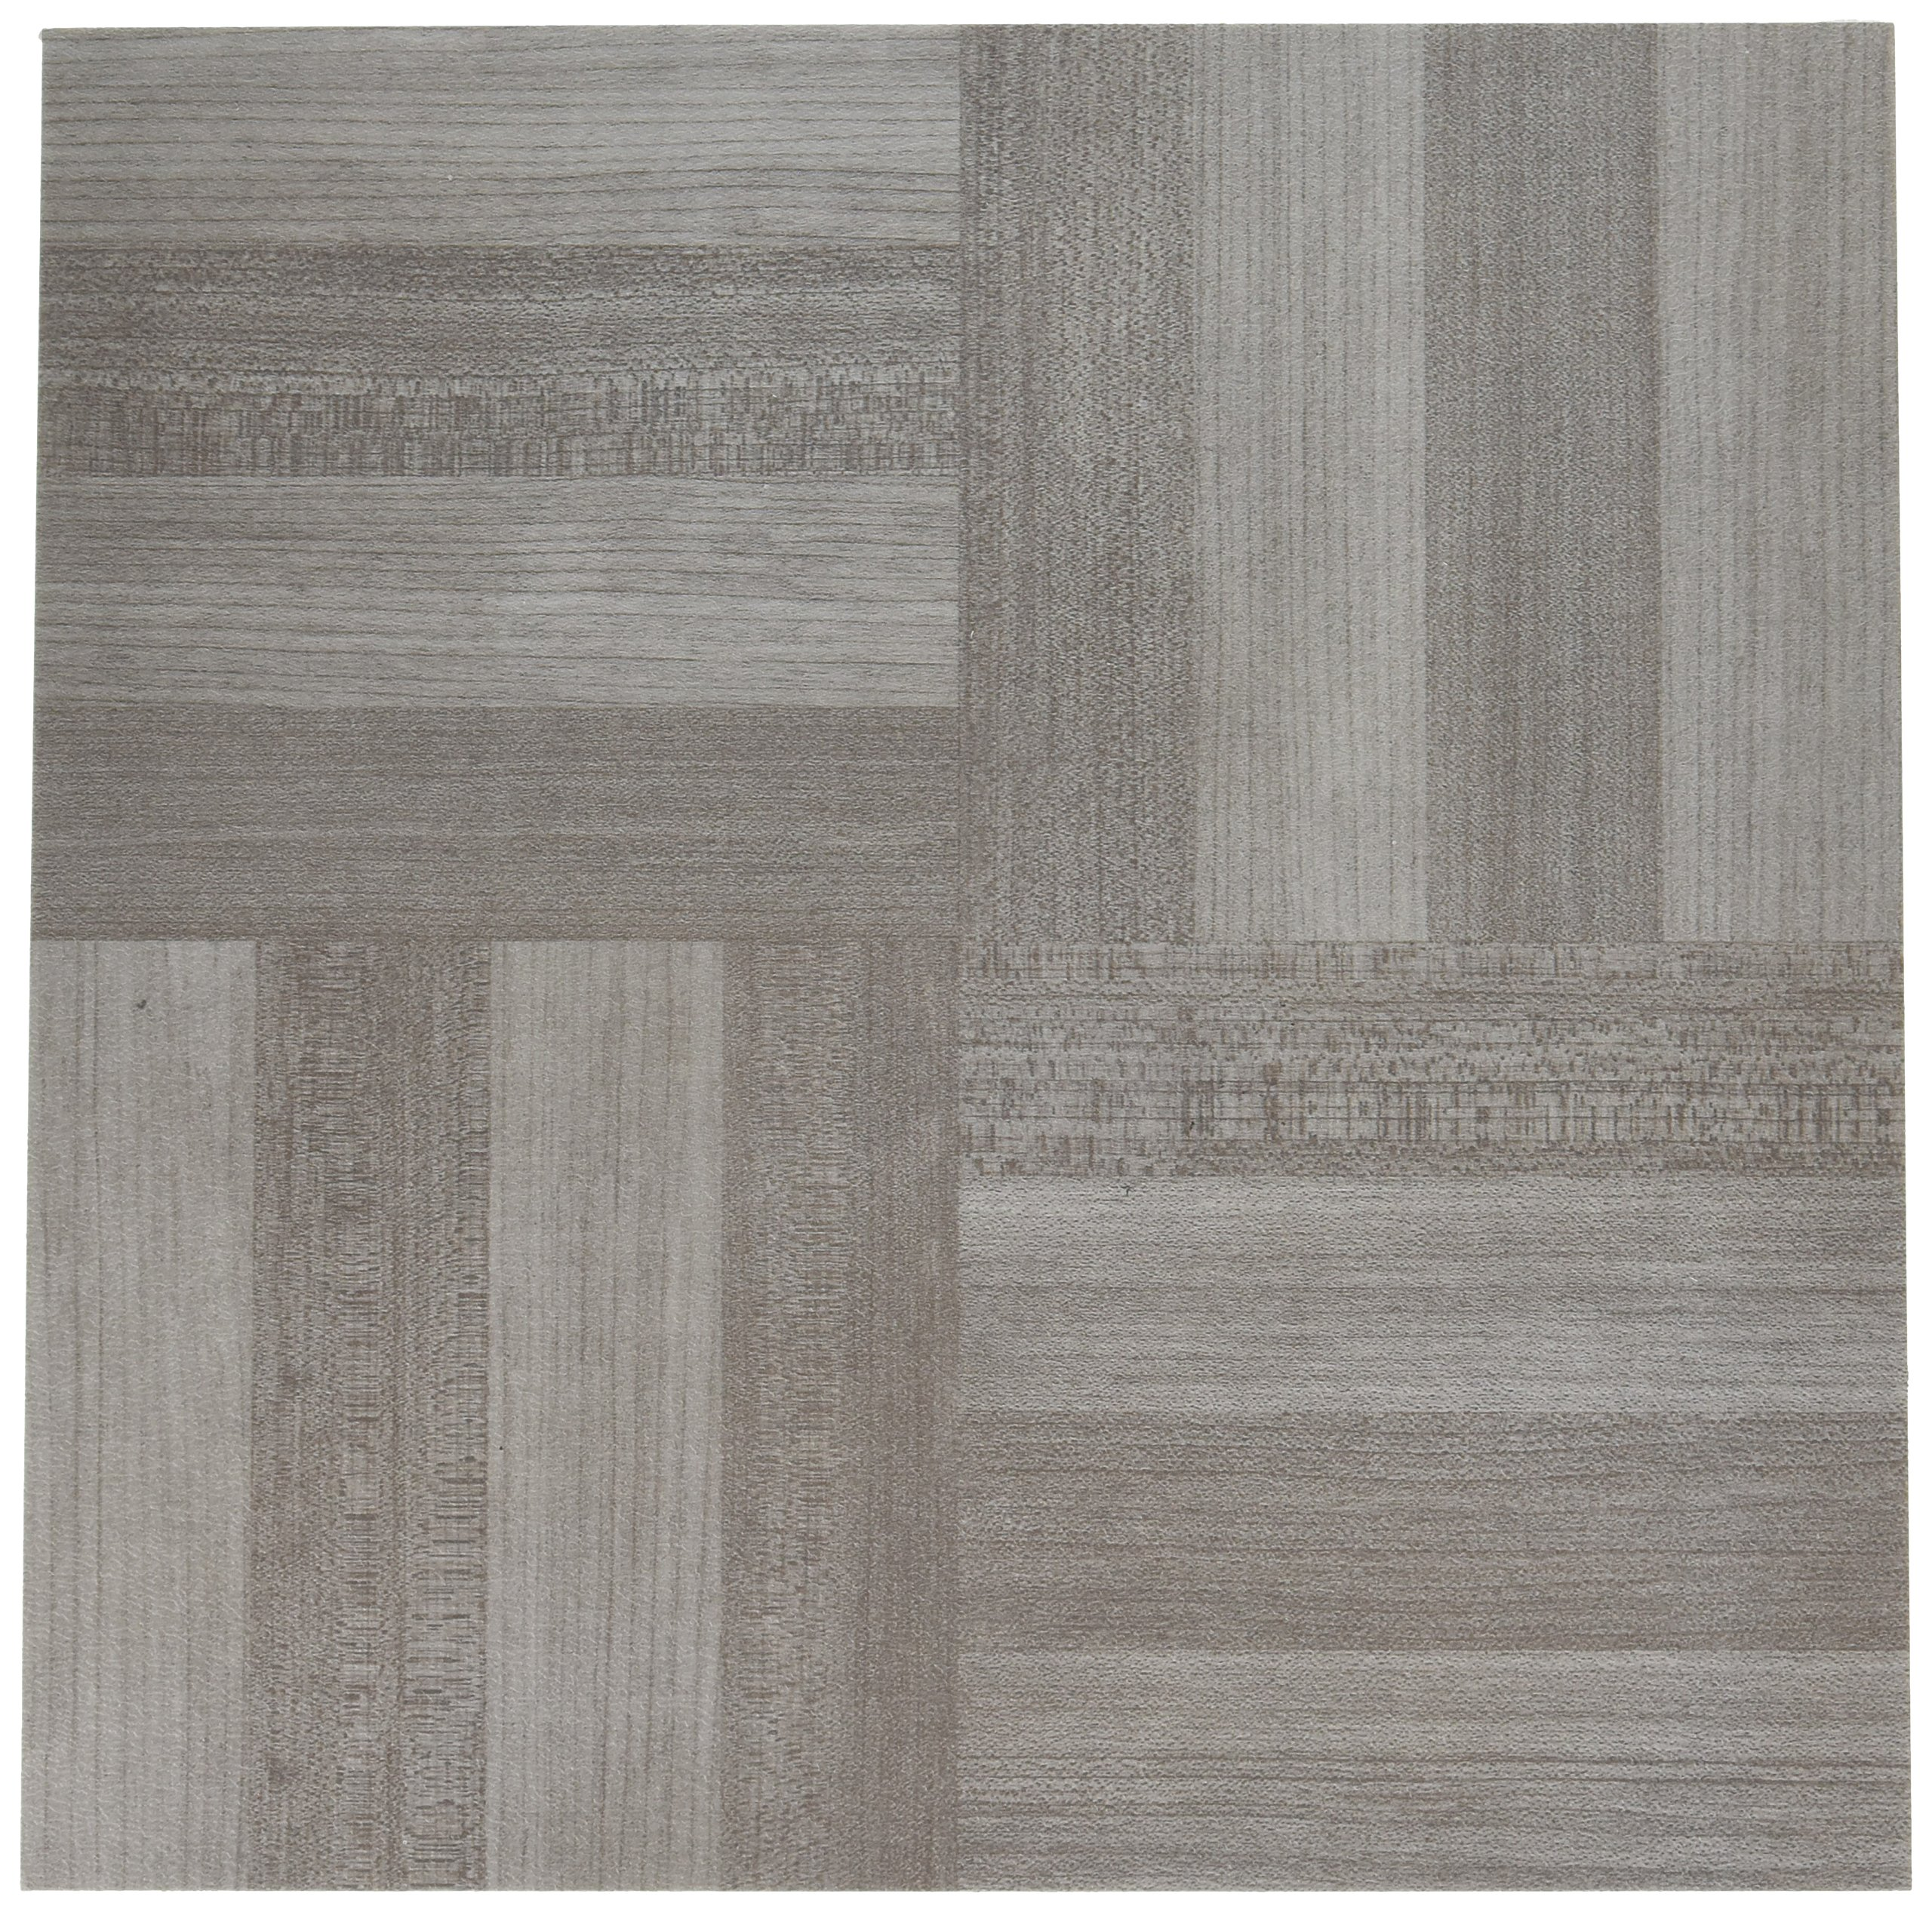 Achim Home Furnishings FTVWD23120 Nexus Self Adhesive 20 Vinyl Floor Tiles, 12'' x 12'', Ash Grey Wood